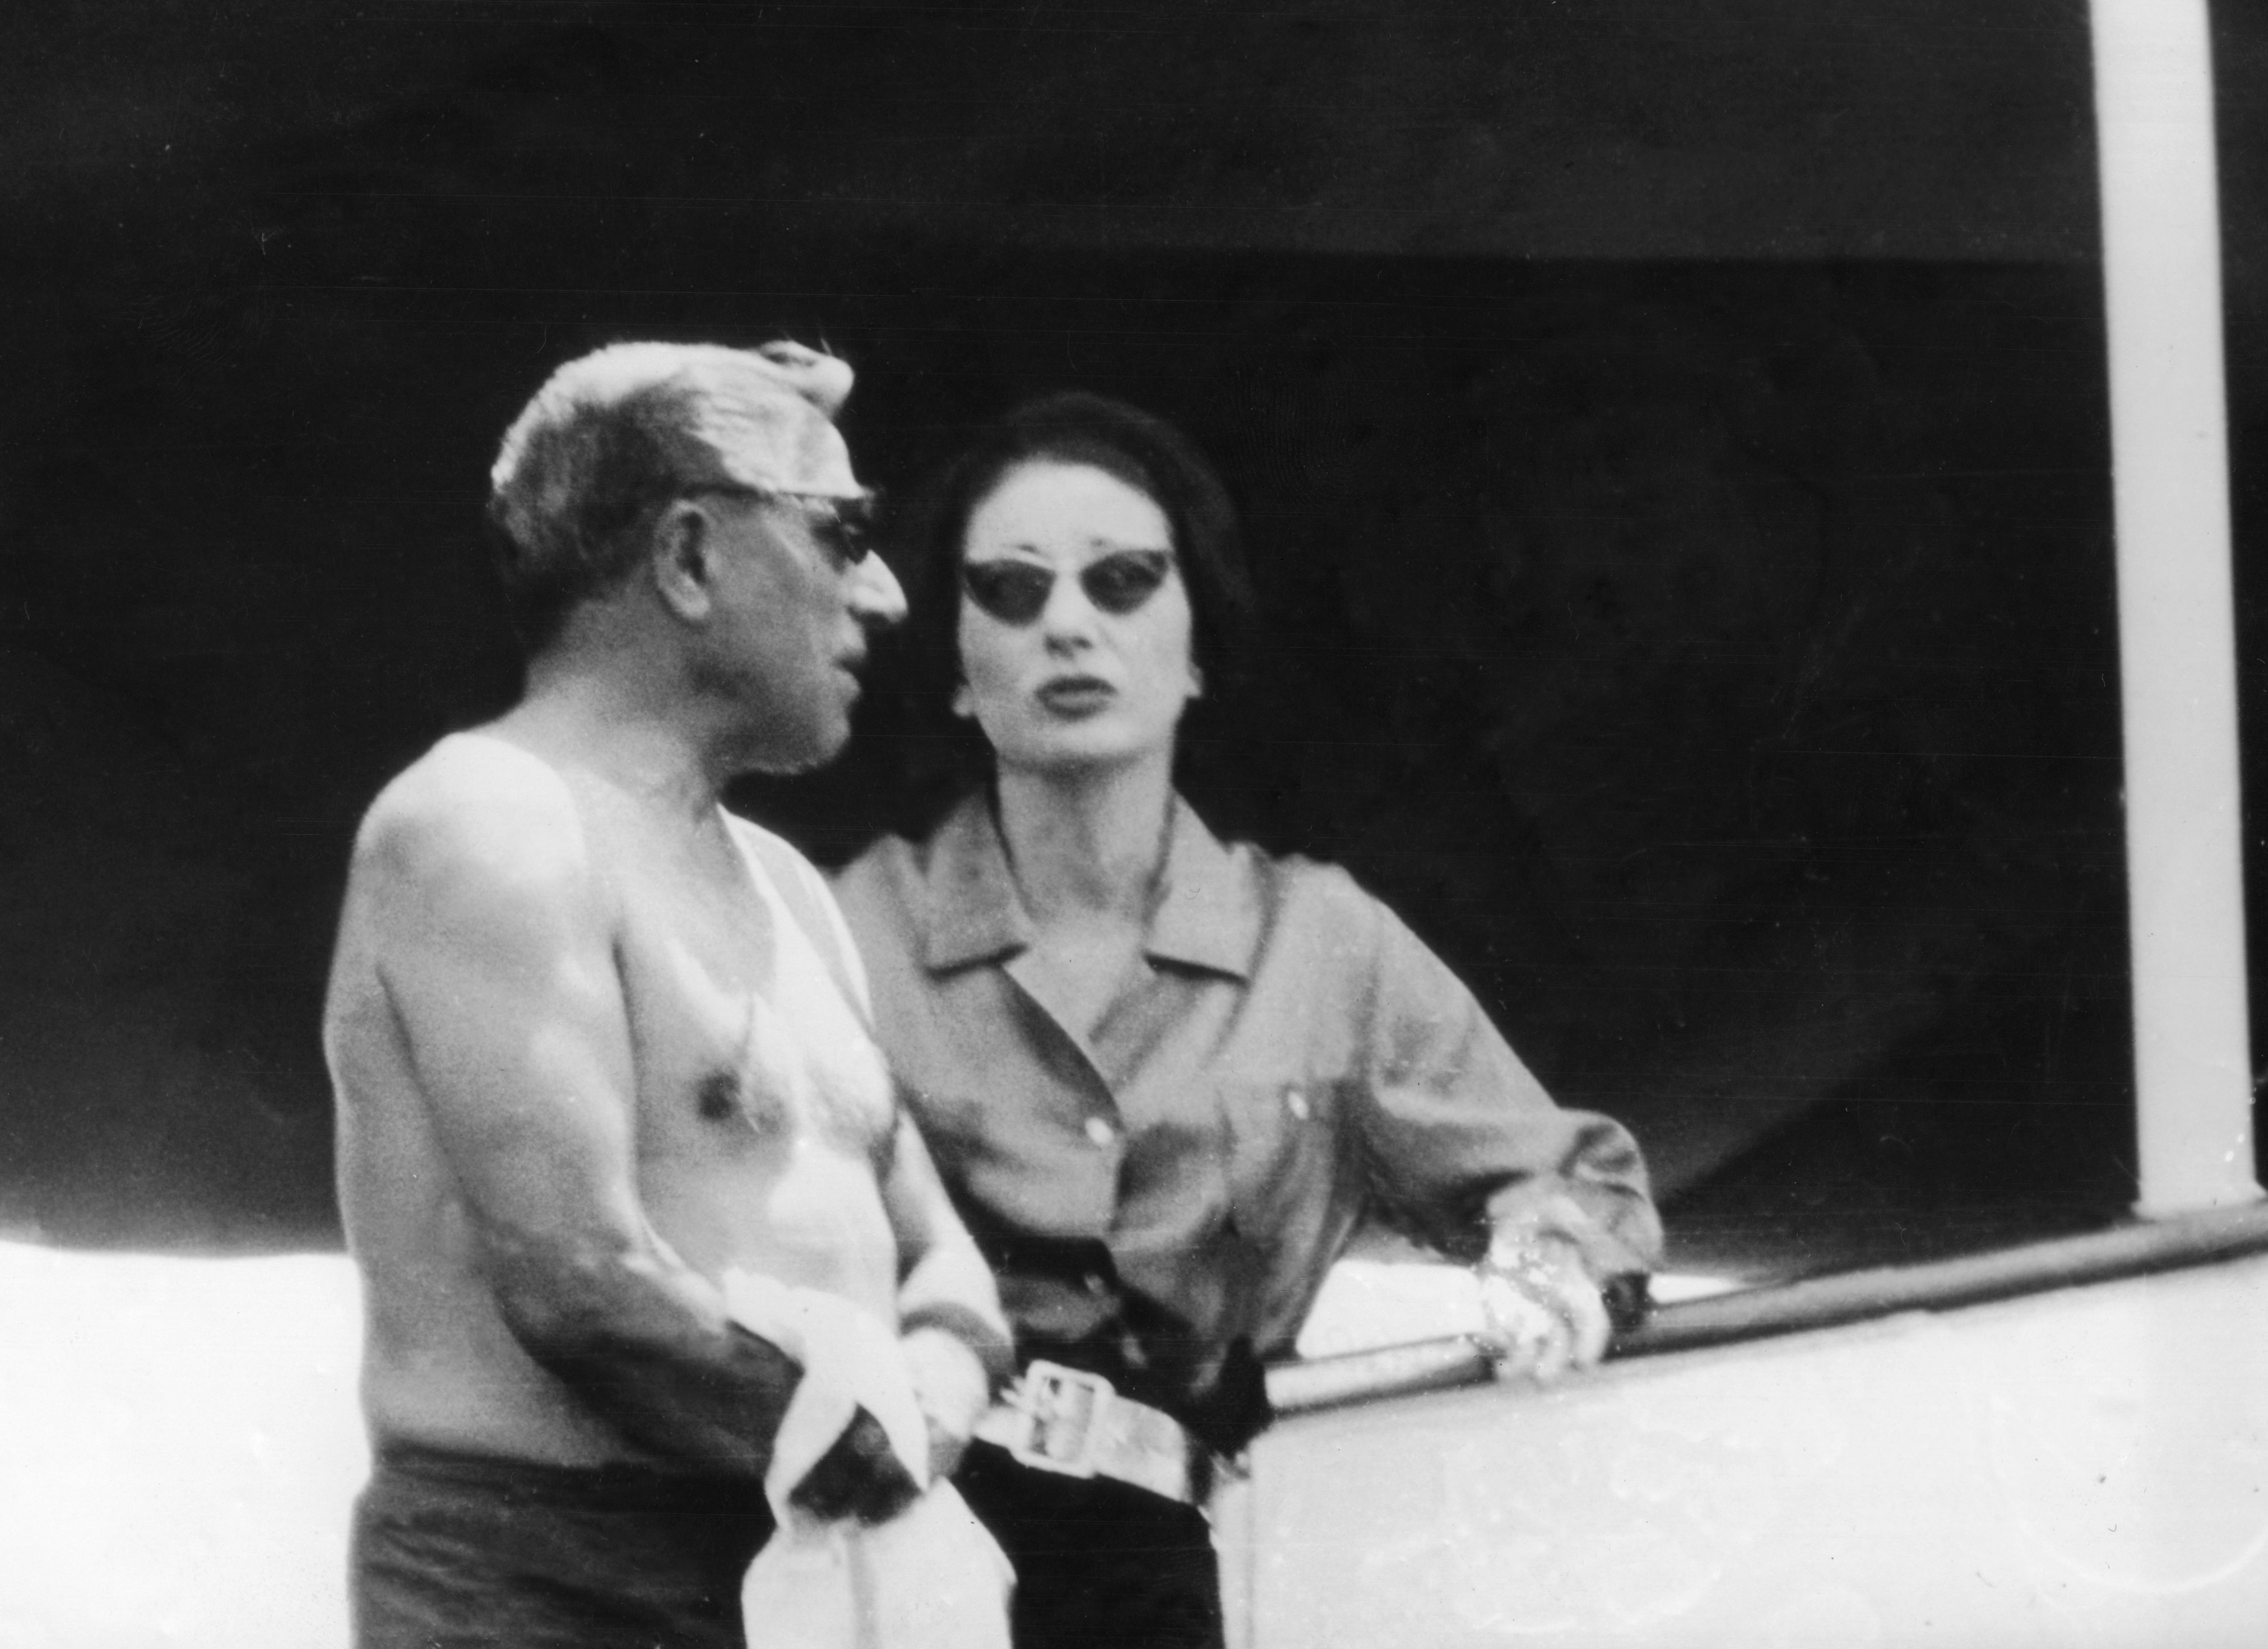 Aristotle and Christina Onassis